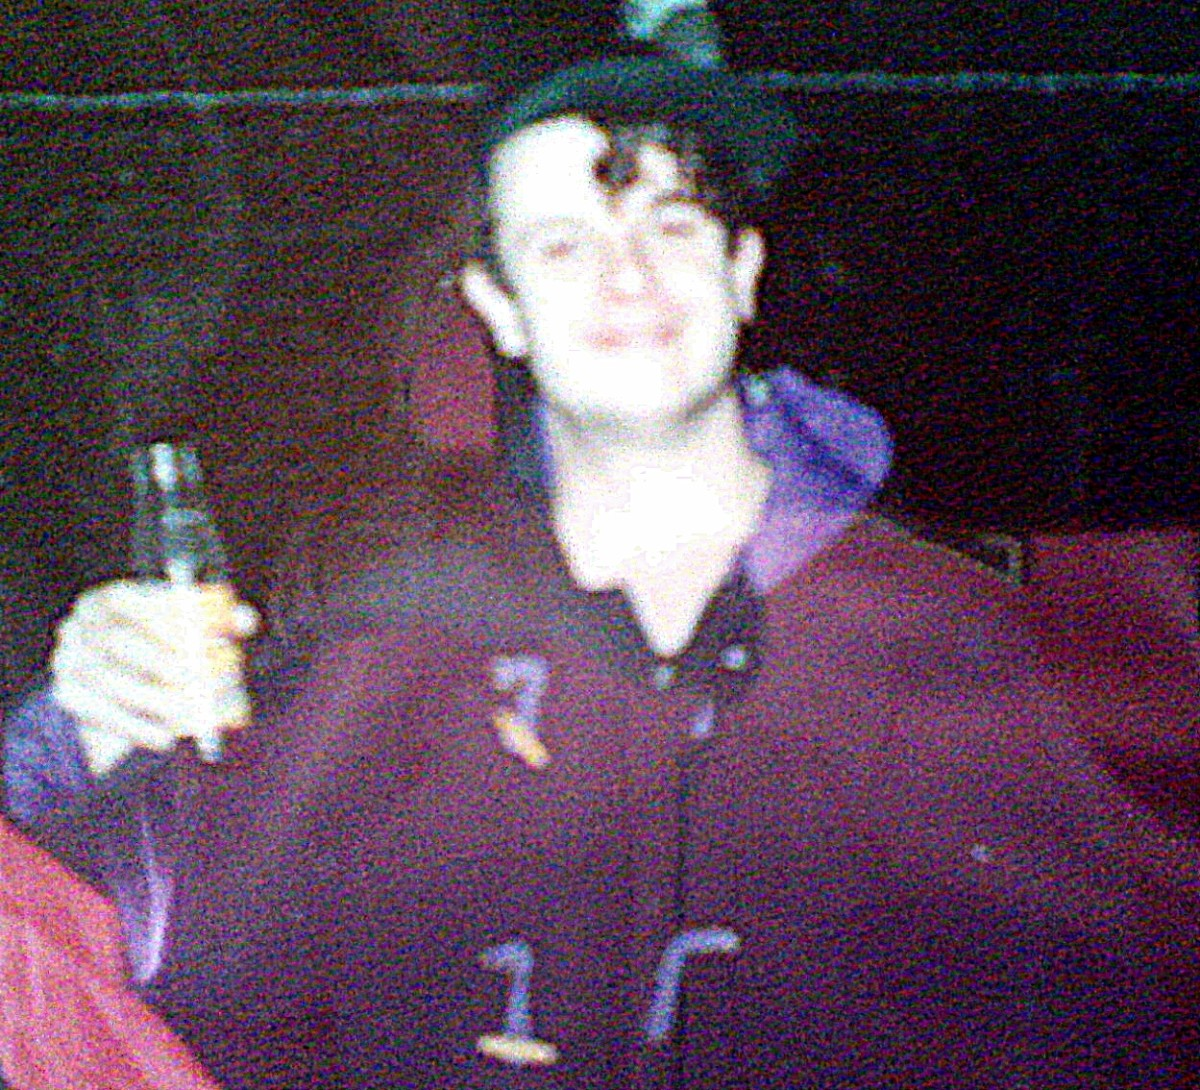 My friend Steve from Blackpool (1990)